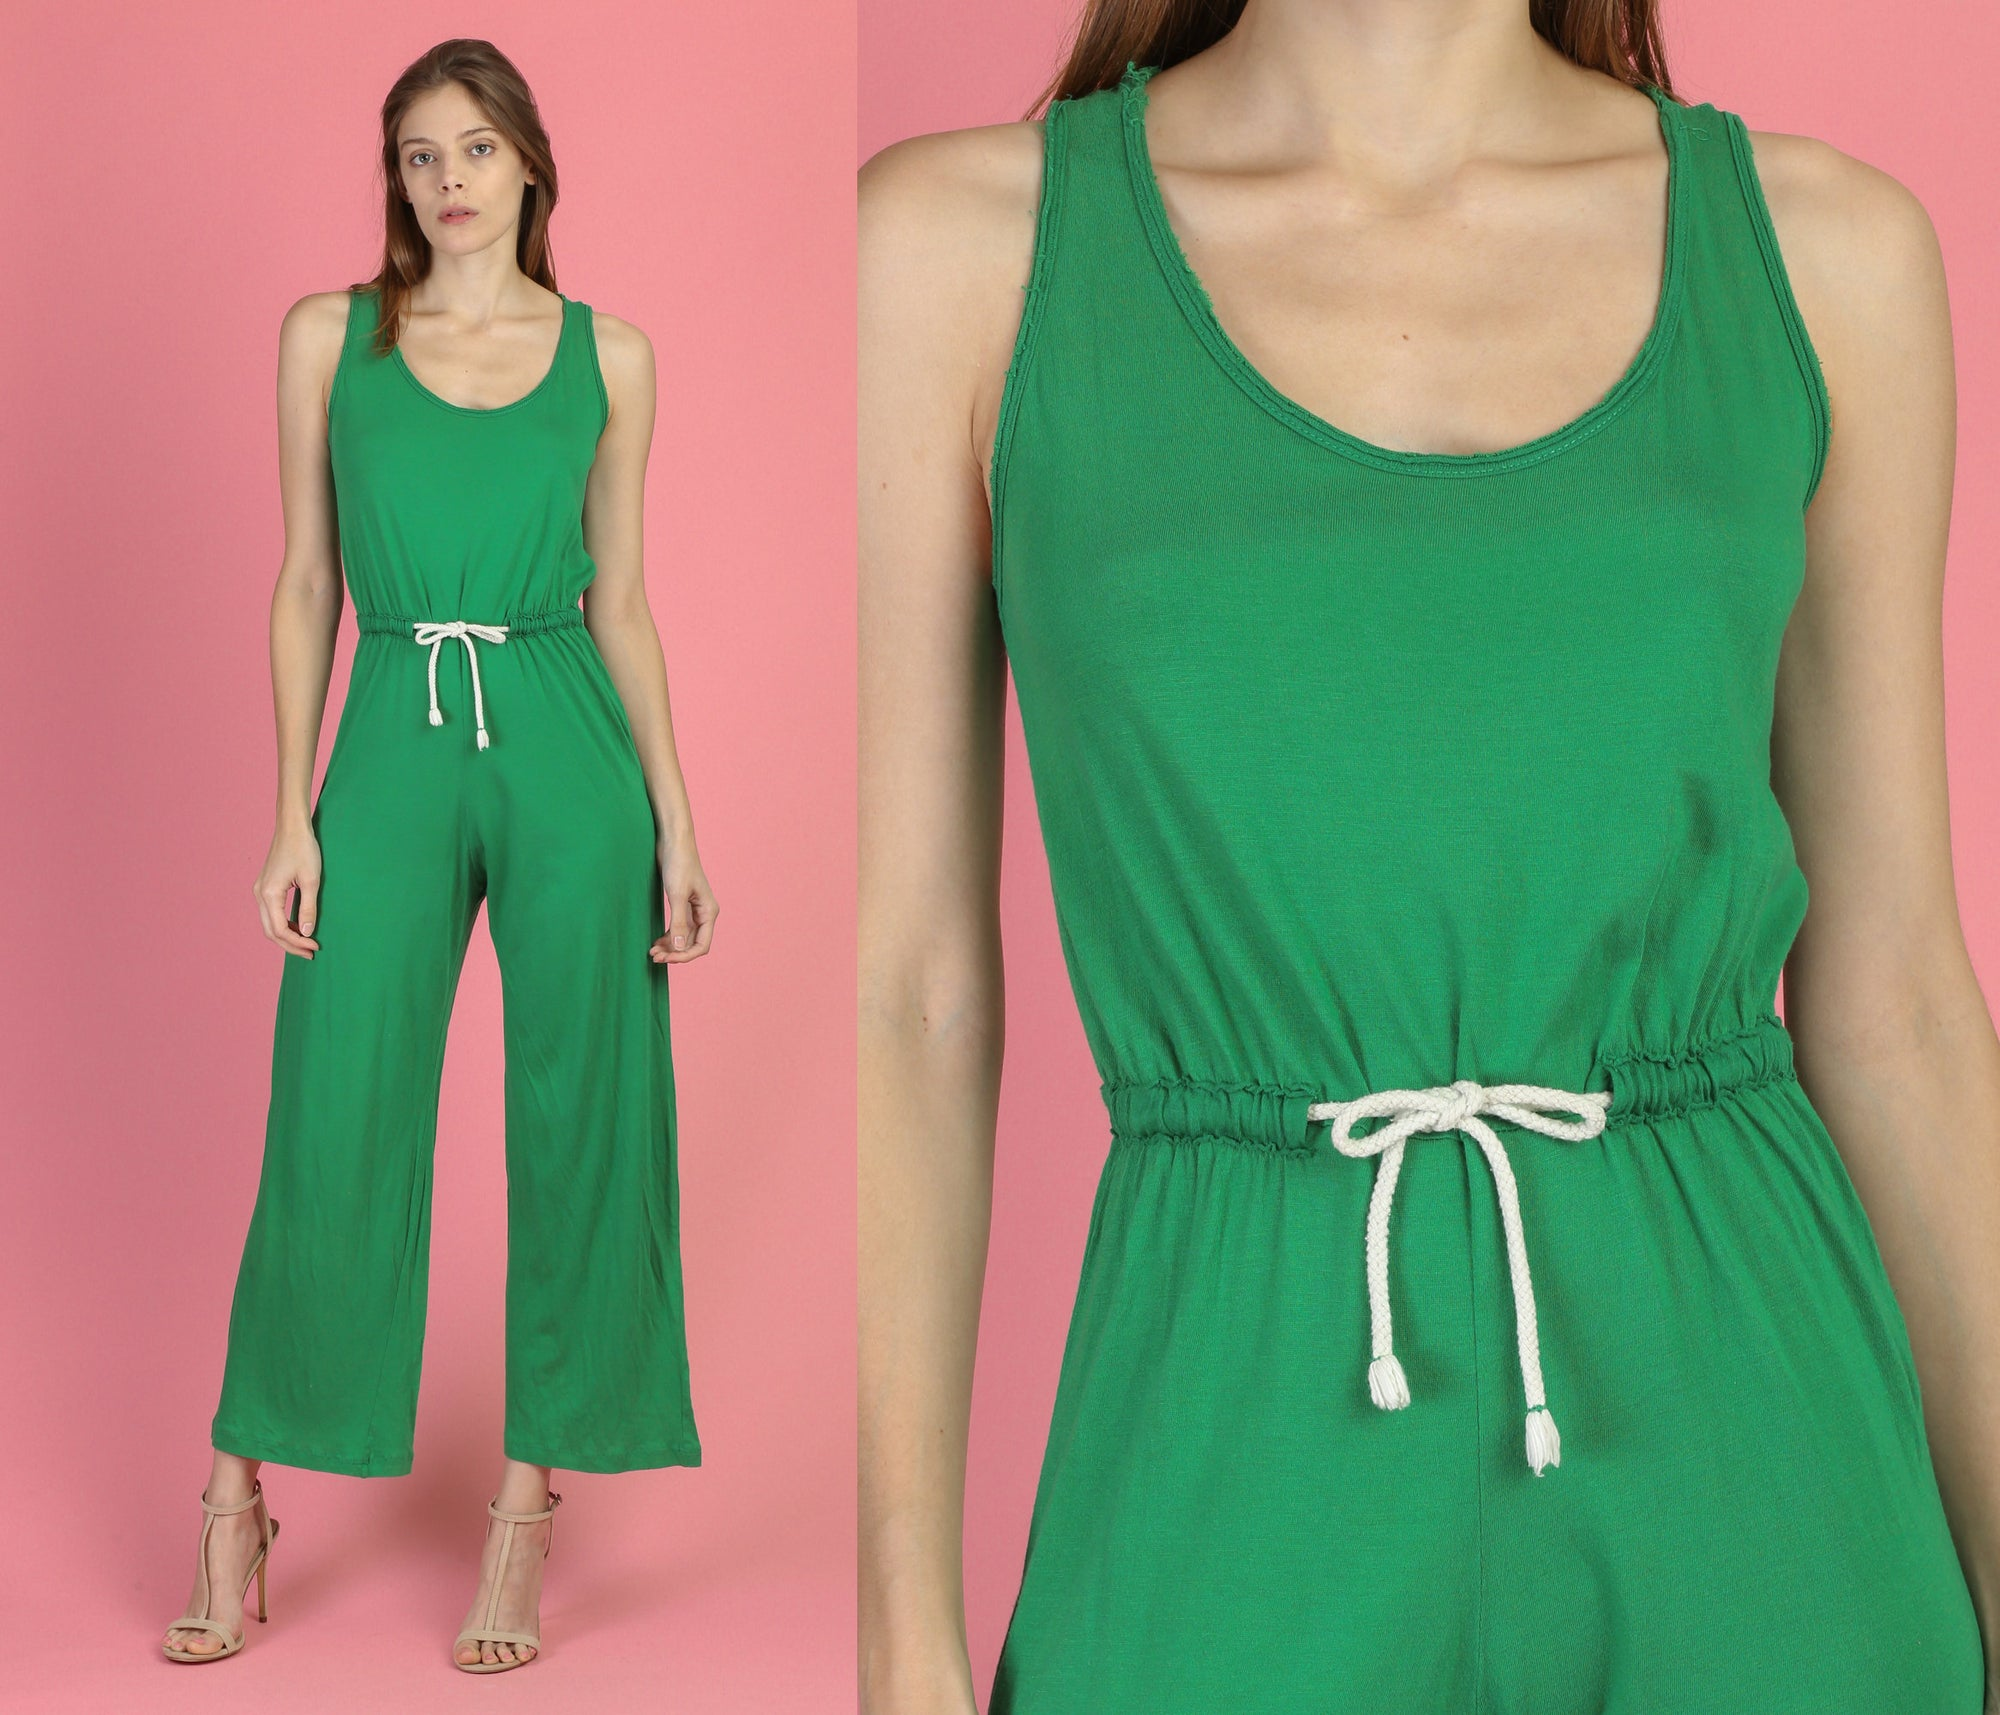 Vintage Green Drawstring Waist Jumpsuit - Small to Medium